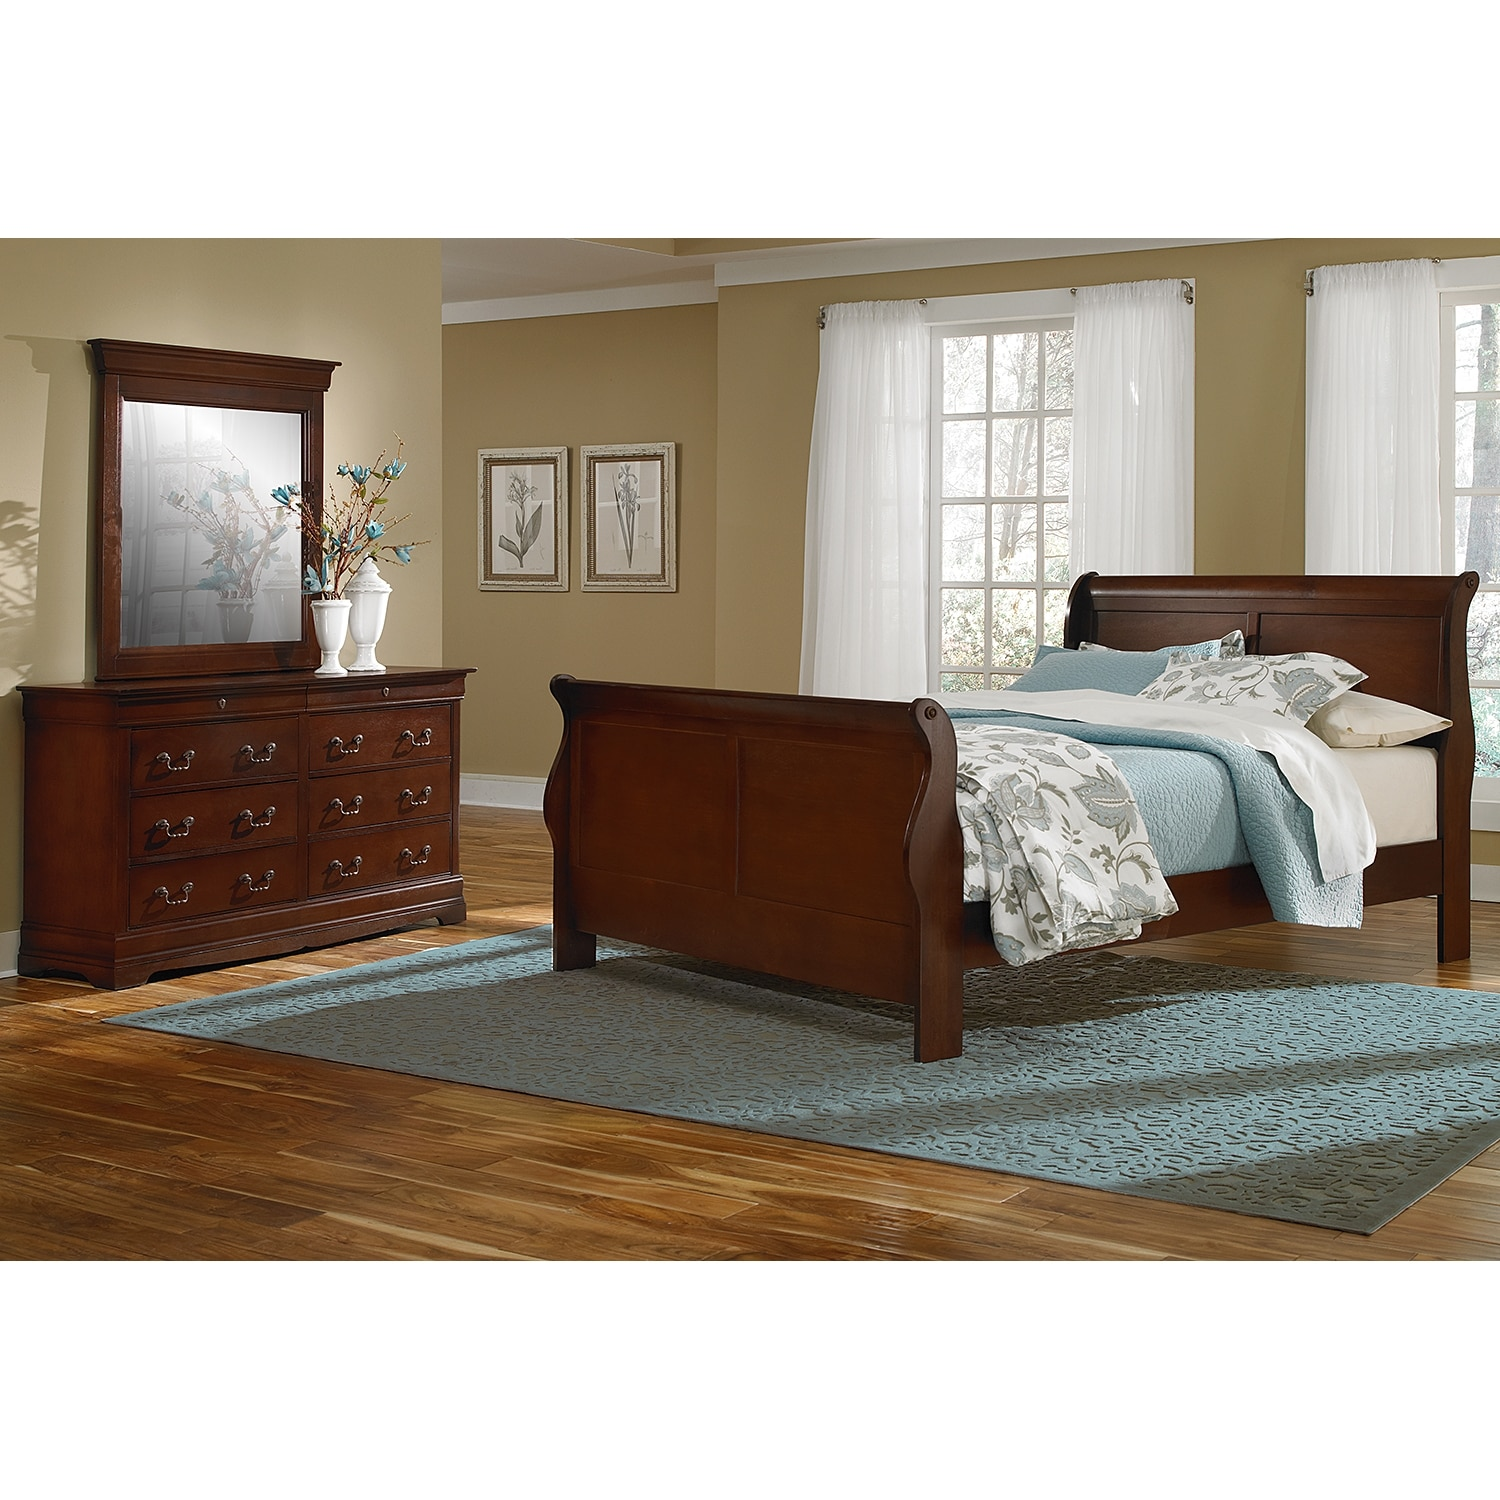 Neo Classic Youth 5 Piece Twin Bedroom Set Cherry Value City Furniture And Mattresses